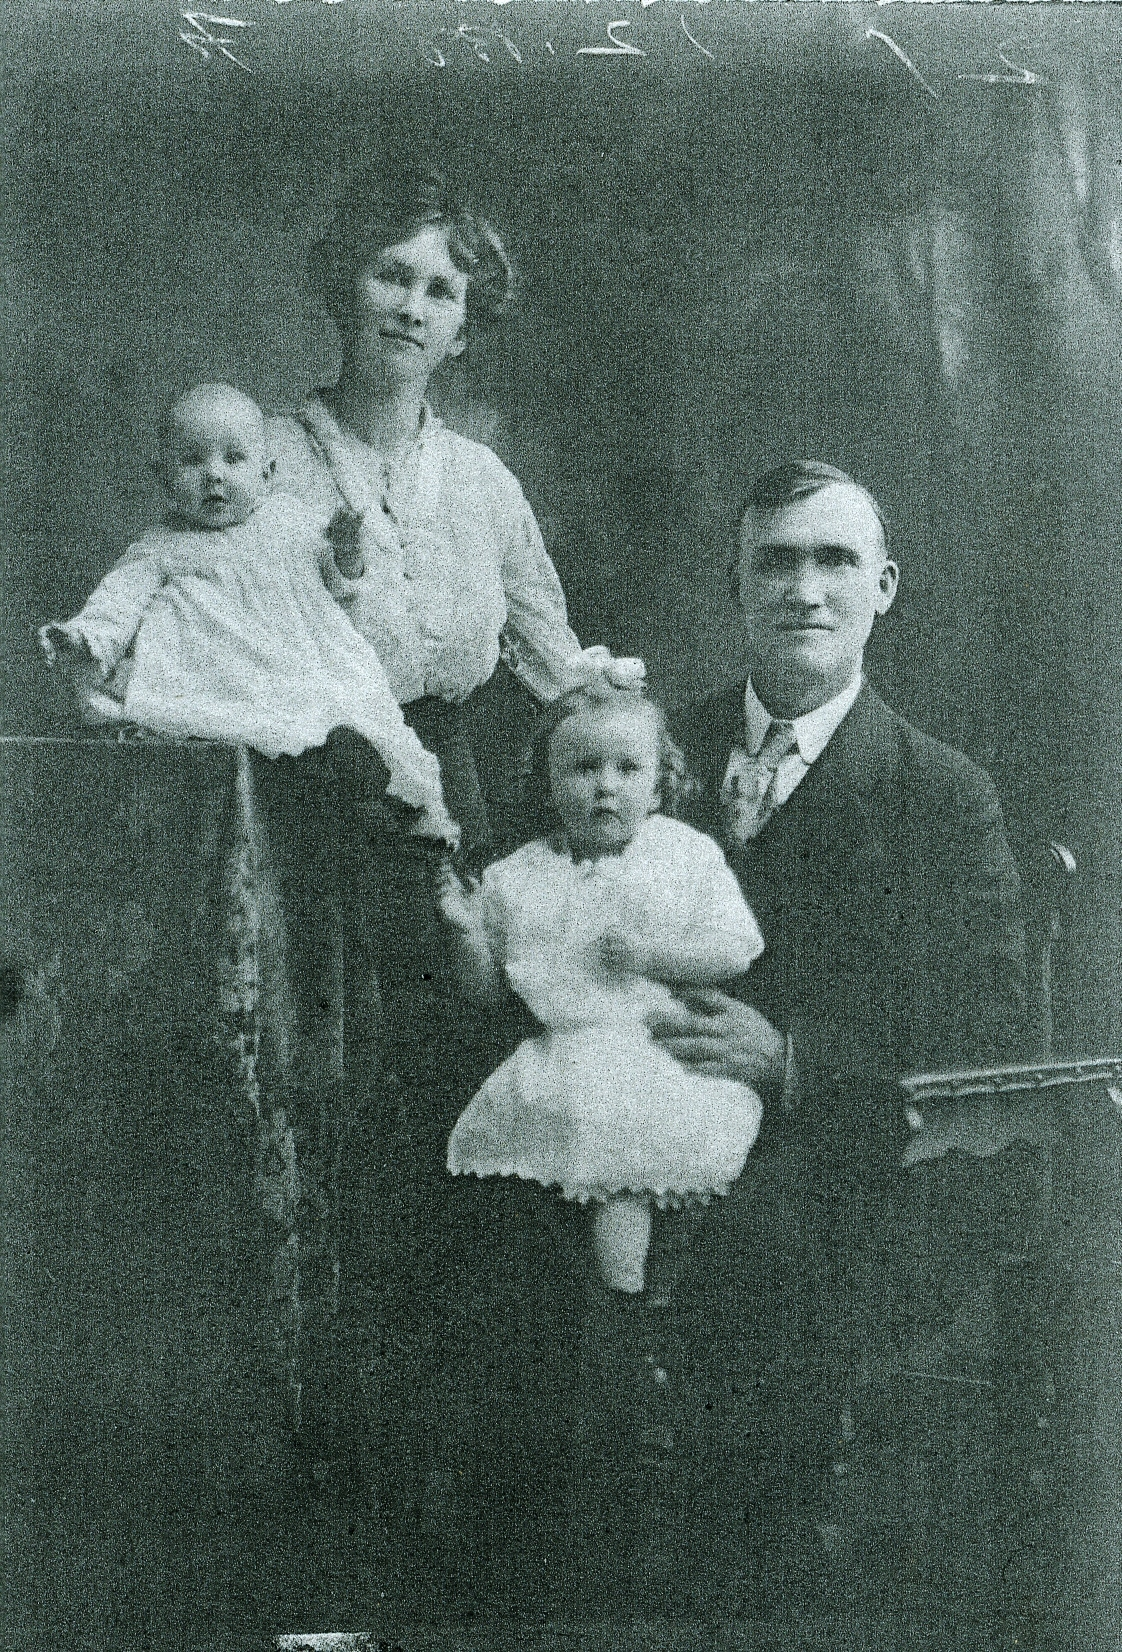 Ed O'Connor 1876-1975 and Maude Hogan 1879-1980  Paul O'connor: These are my grandparents-sorry,don't know your relation .Pat La Londe: My grandmother was Veronica O'Connor. Her married name was ForestelL, ED would have been my Moms Great Uncle.